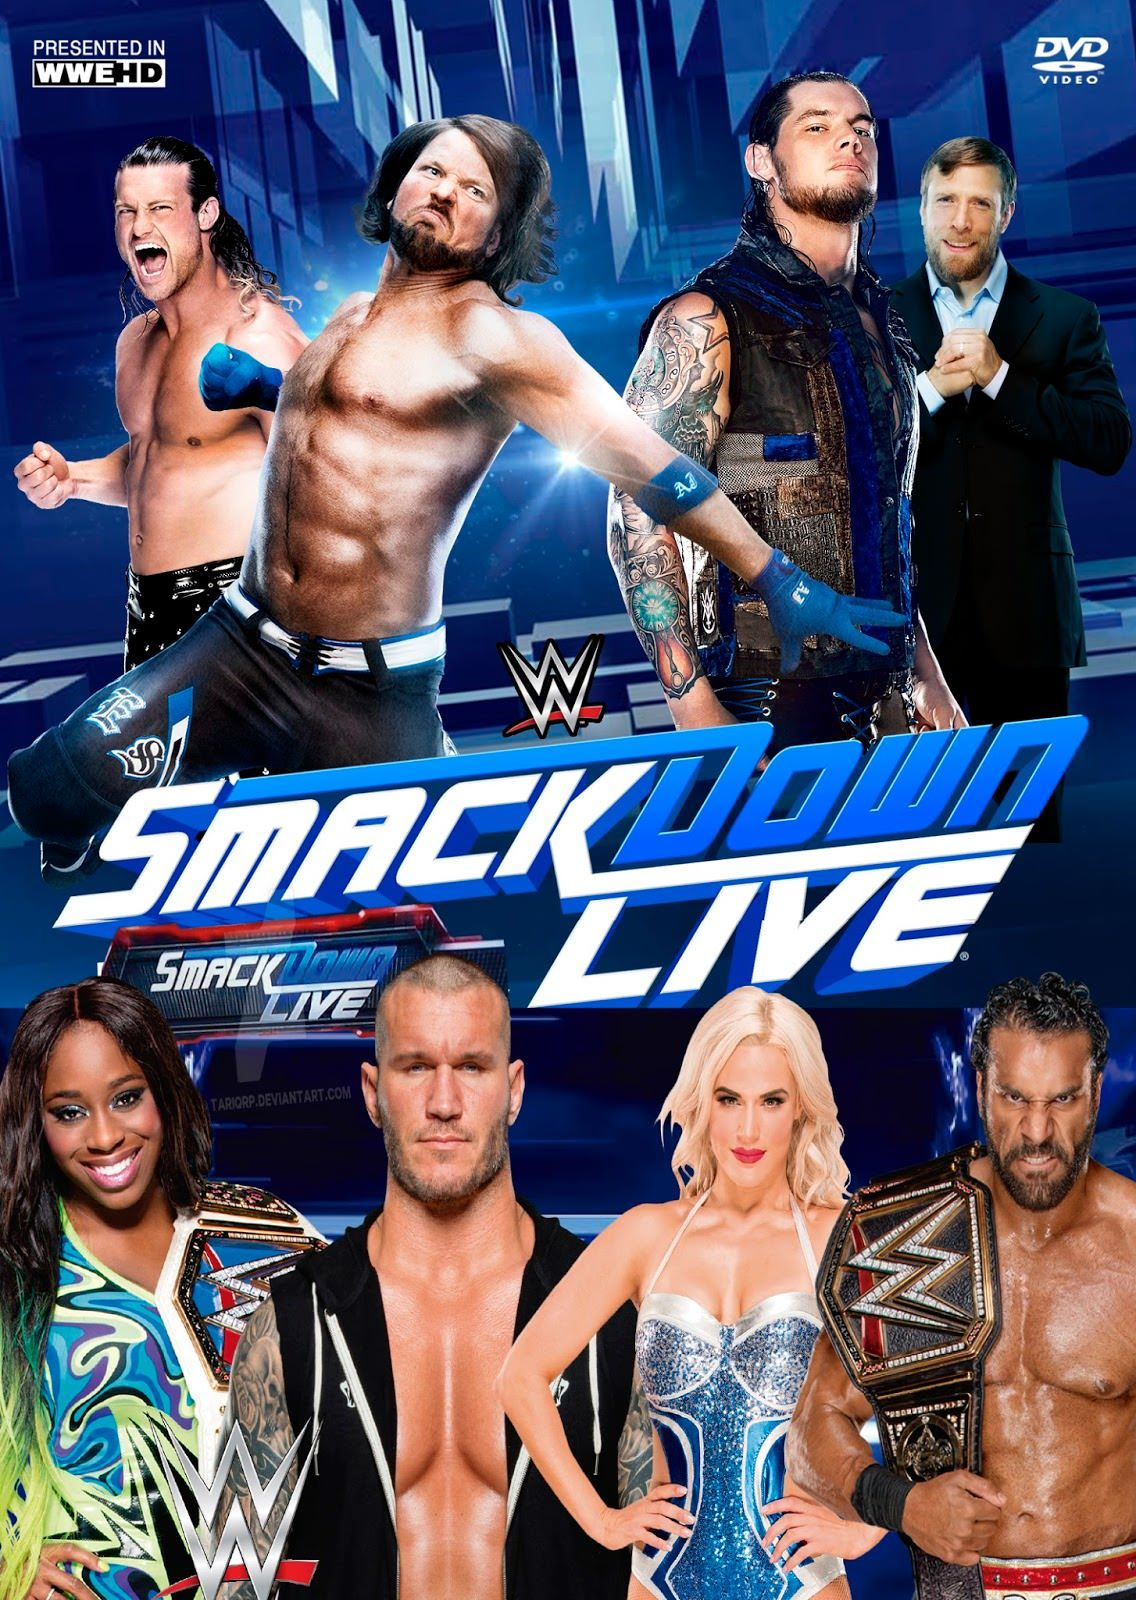 WWE Smackdown Live 10 September 2019 HDTV 720p 480p 300MB